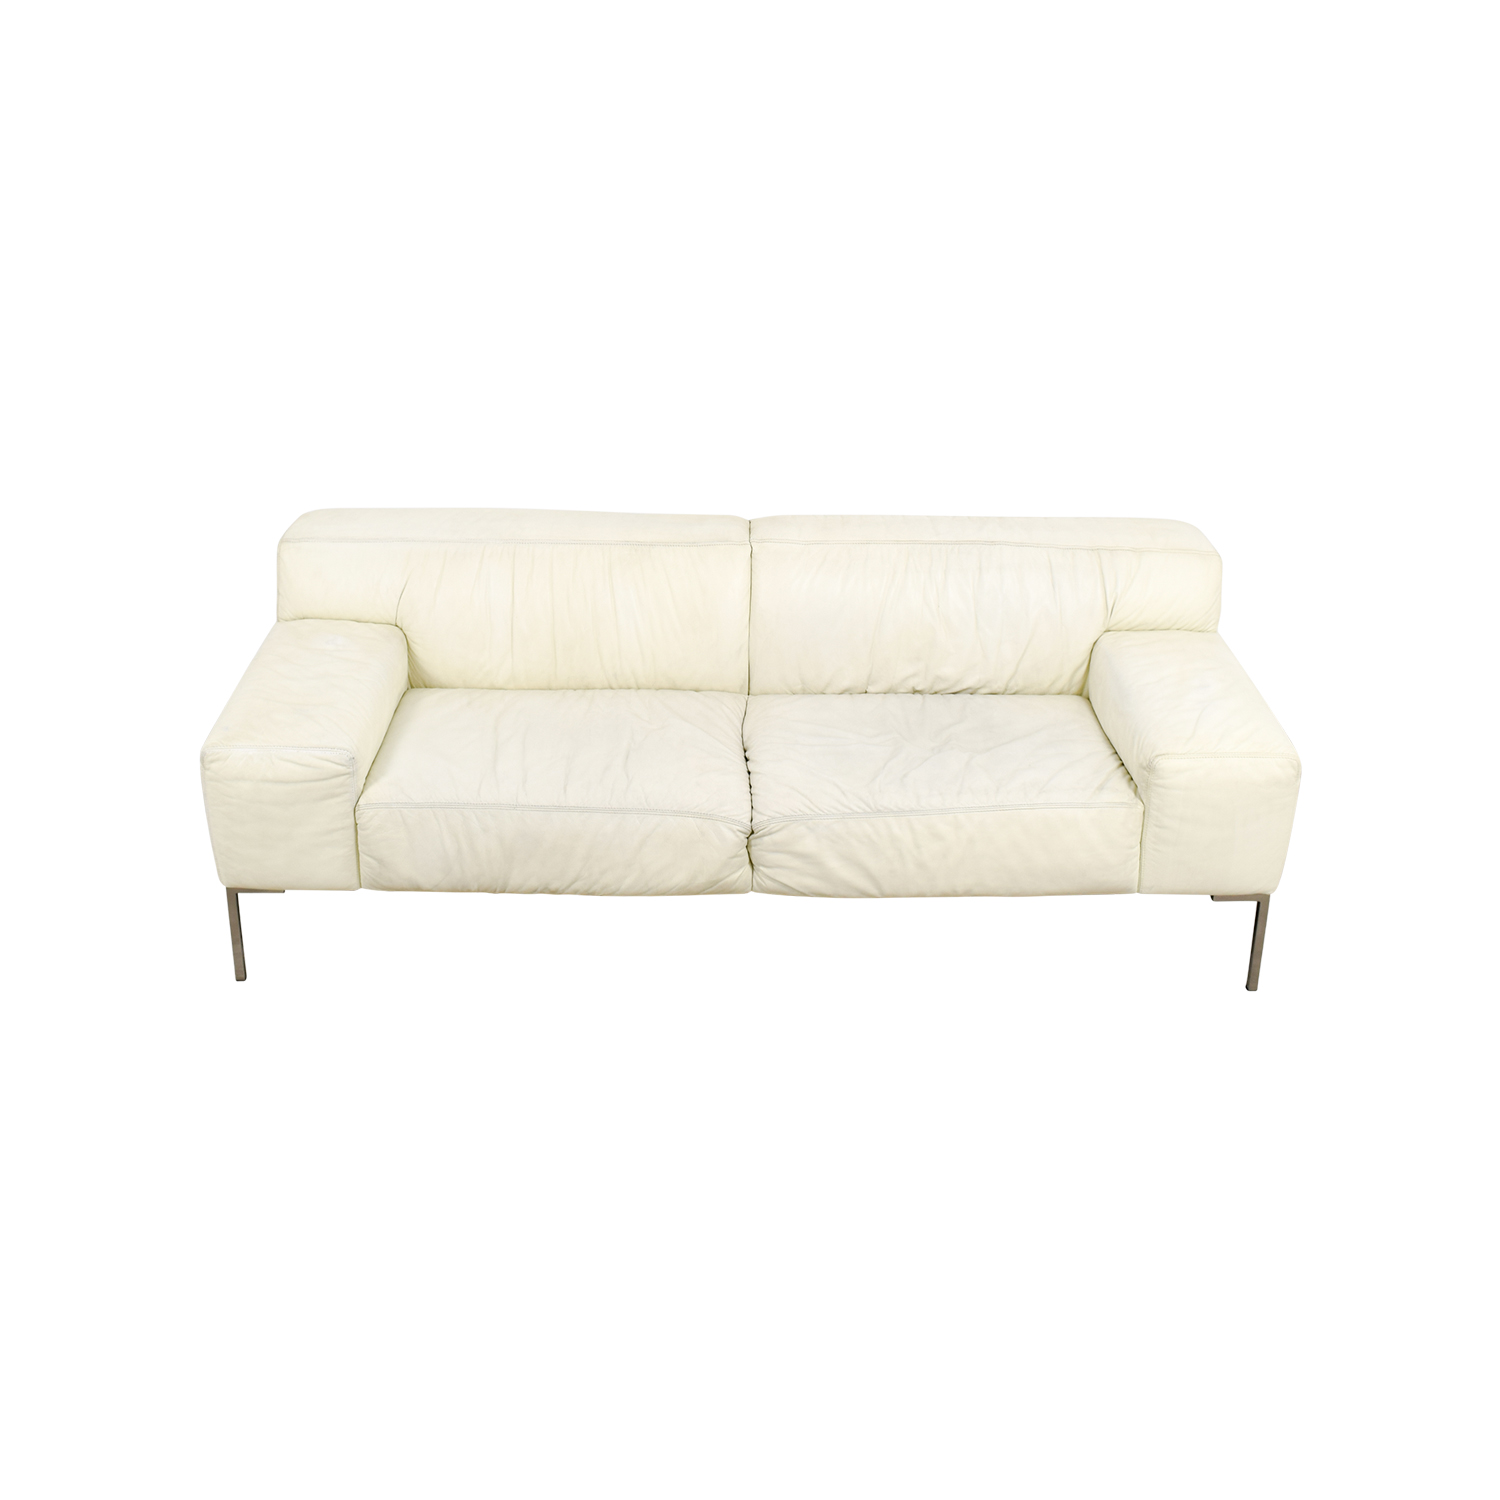 jensen lewis sleeper sofa price low cost designs 90 off american leather tuscan white discount